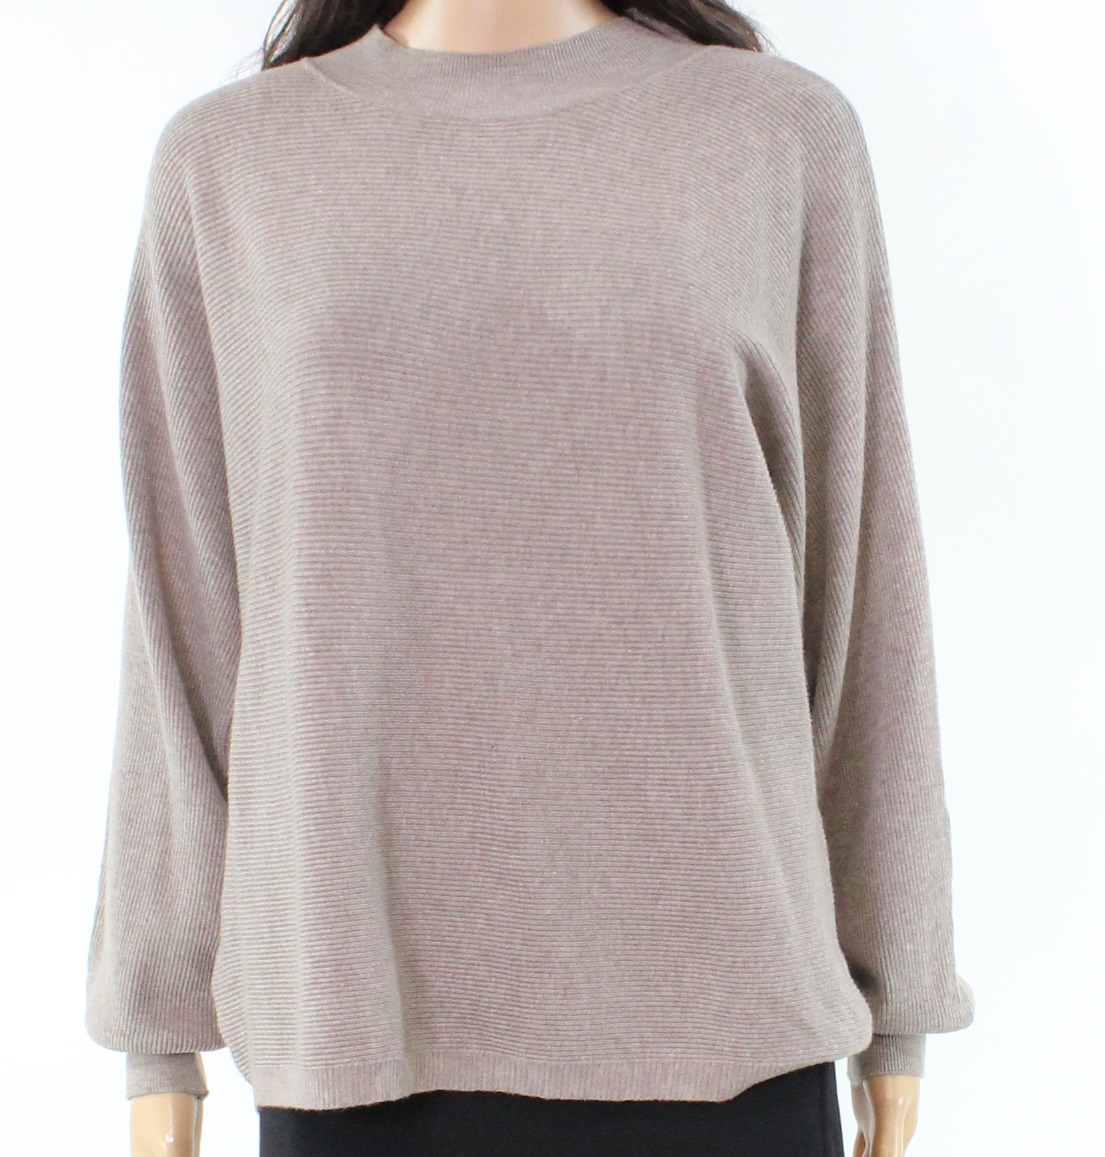 Designer NEW Beige Ribbed-Knit Dolman-Sleeve Small S Tunic Sweater